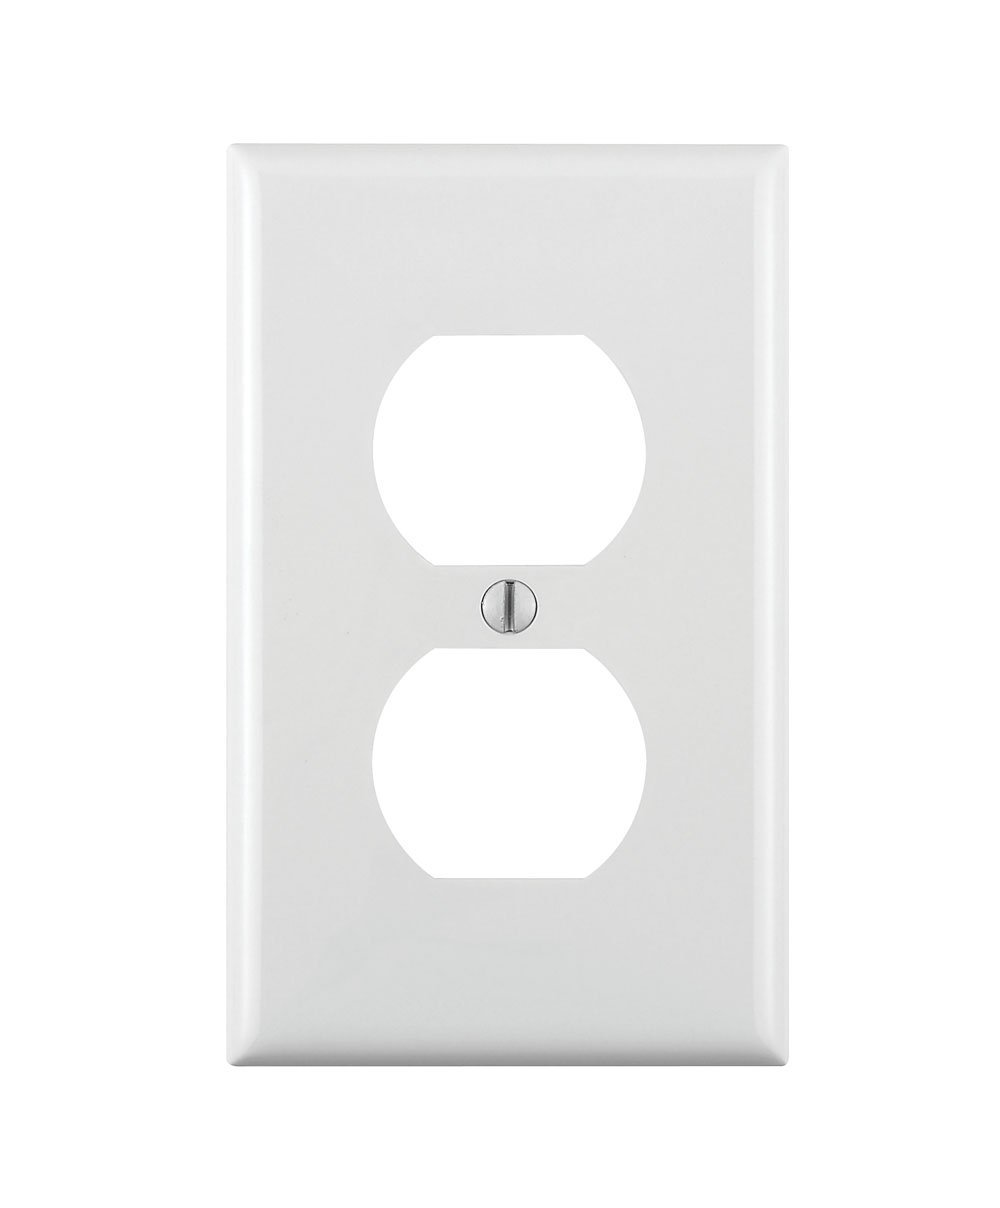 Leviton 80703-W 1-Gang Duplex Receptacle Wallplate, Standard Size, Thermoplastic Nylon, Device Mount, 20-Pack, White, Piece by Leviton